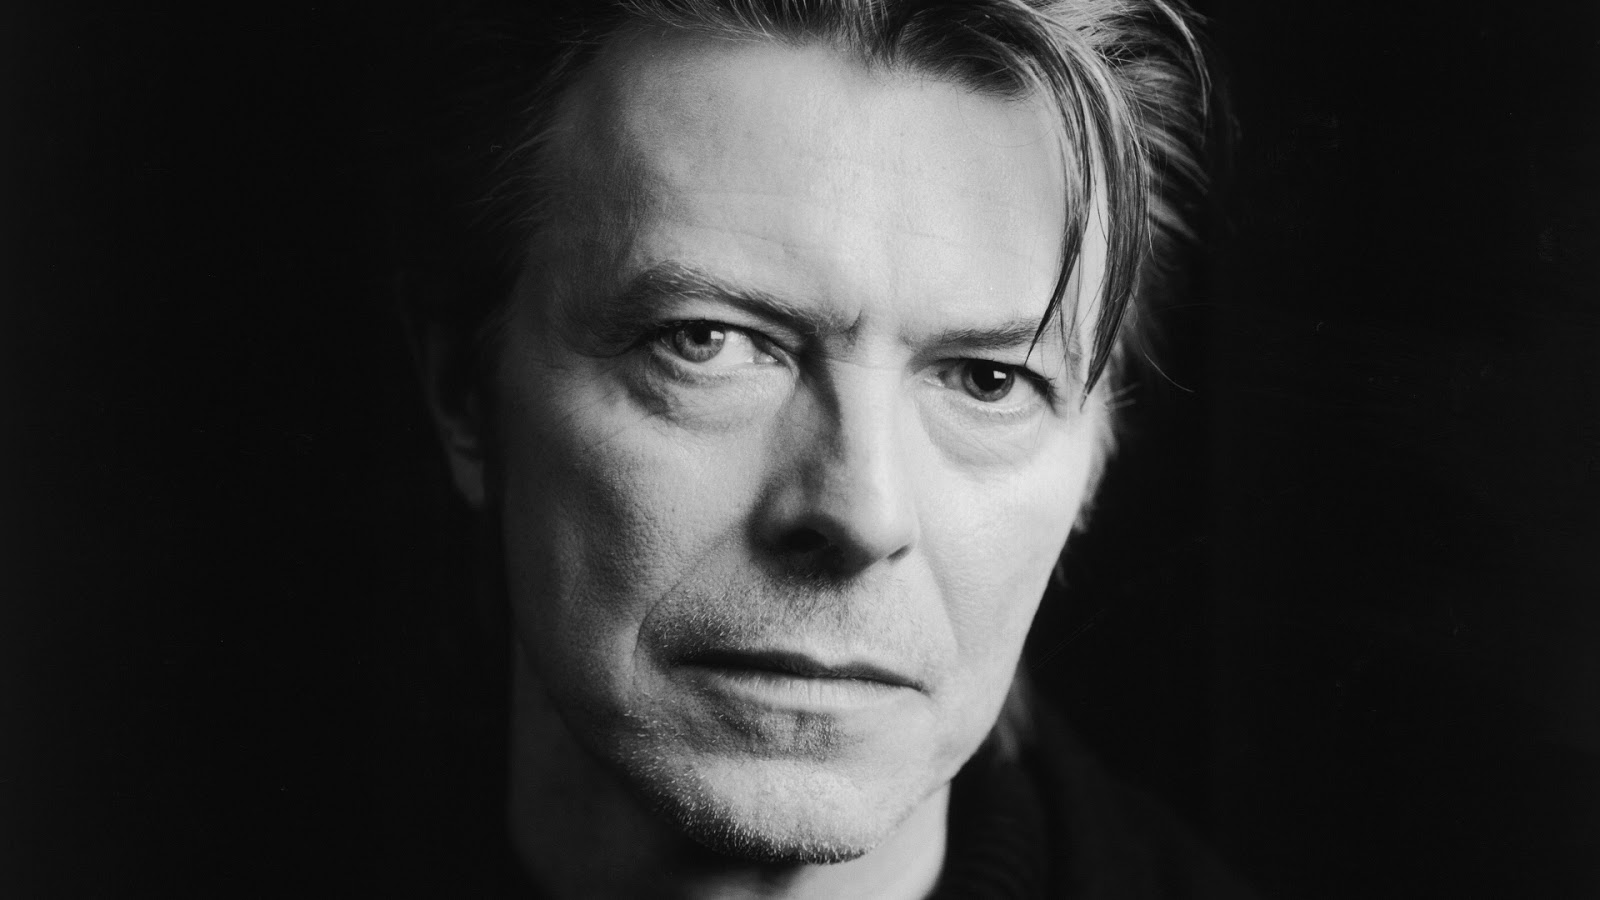 Davide Bowie, Davide Bowie dies, blackstar, legend, culture and trend magazine